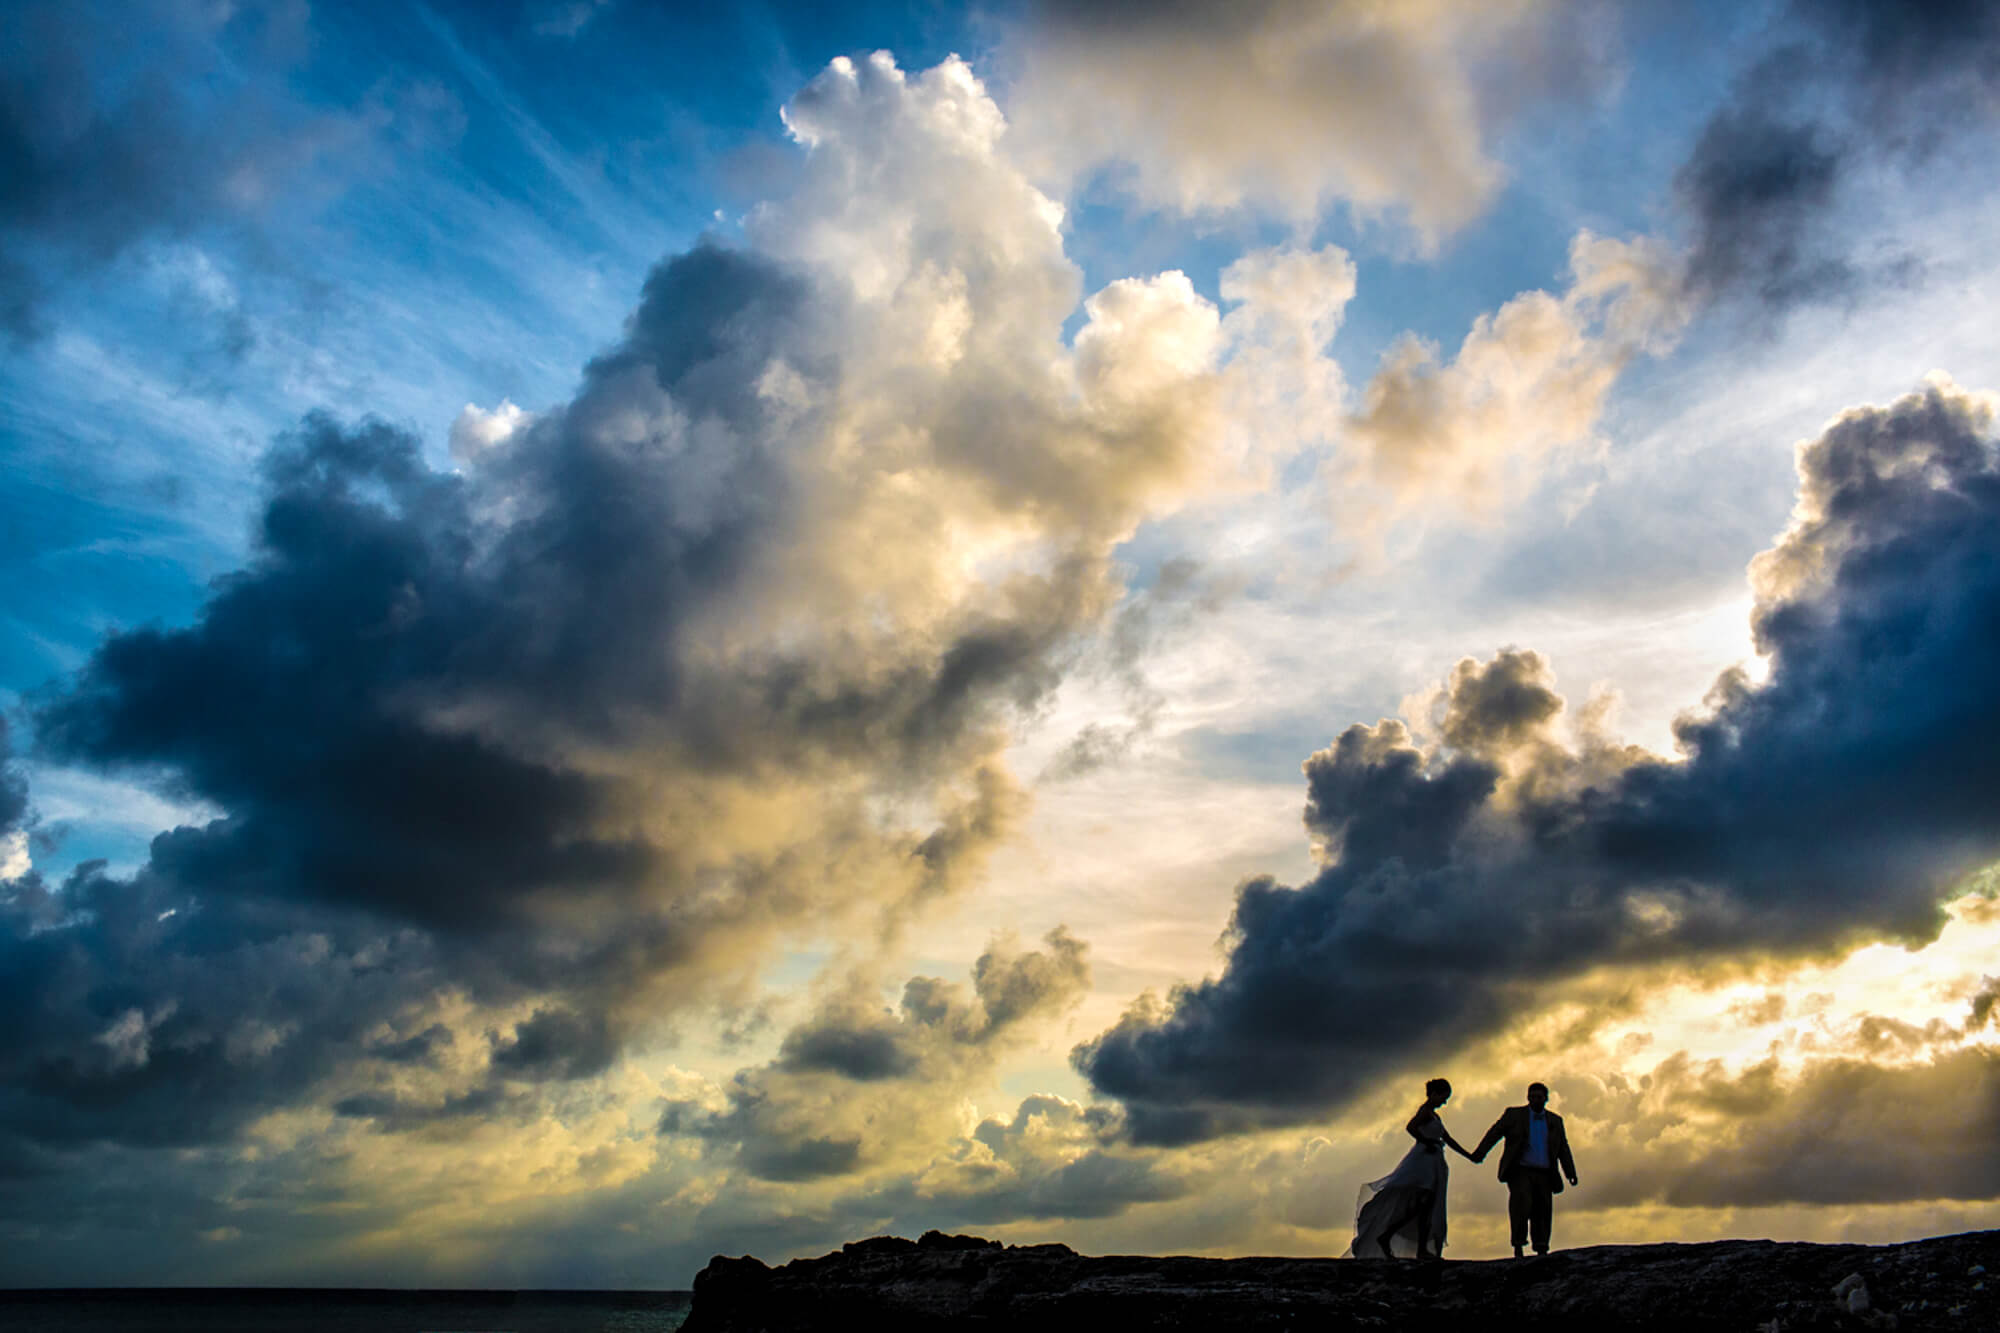 02-bride-and-groom-silhouette-sunset-bahamas.jpg